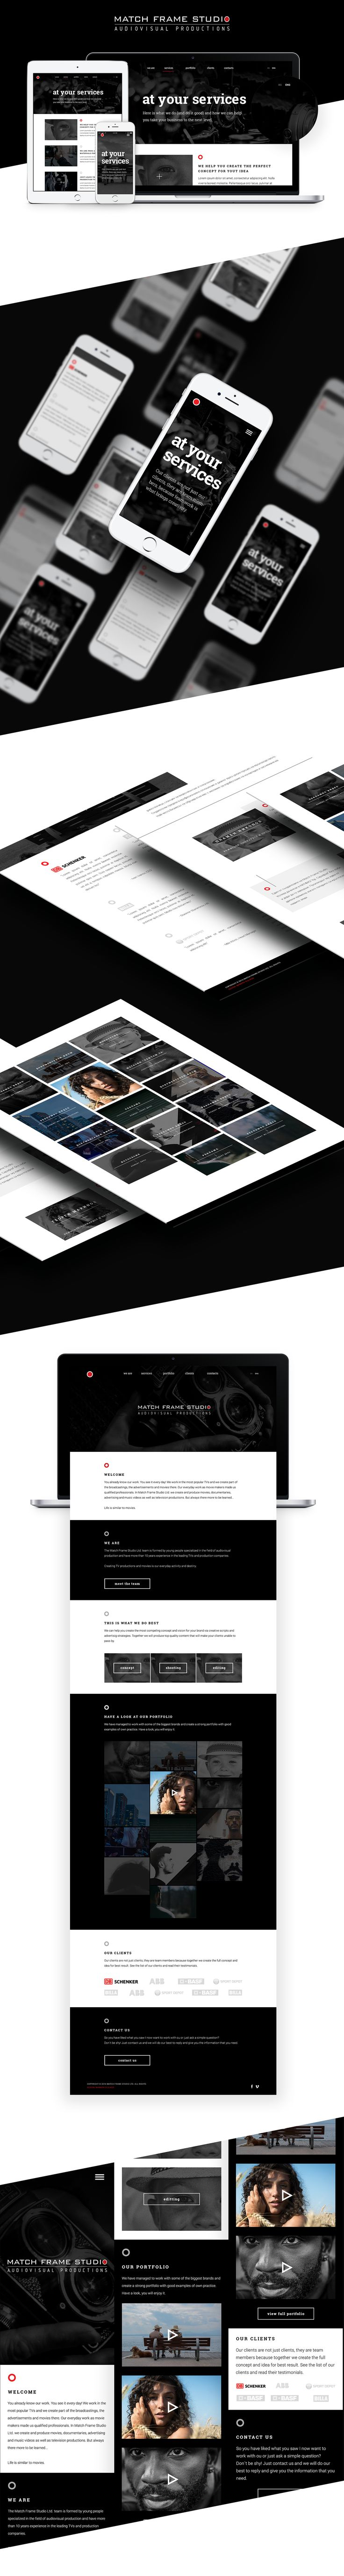 Match Frame Studio website and mobile redesign on Behance